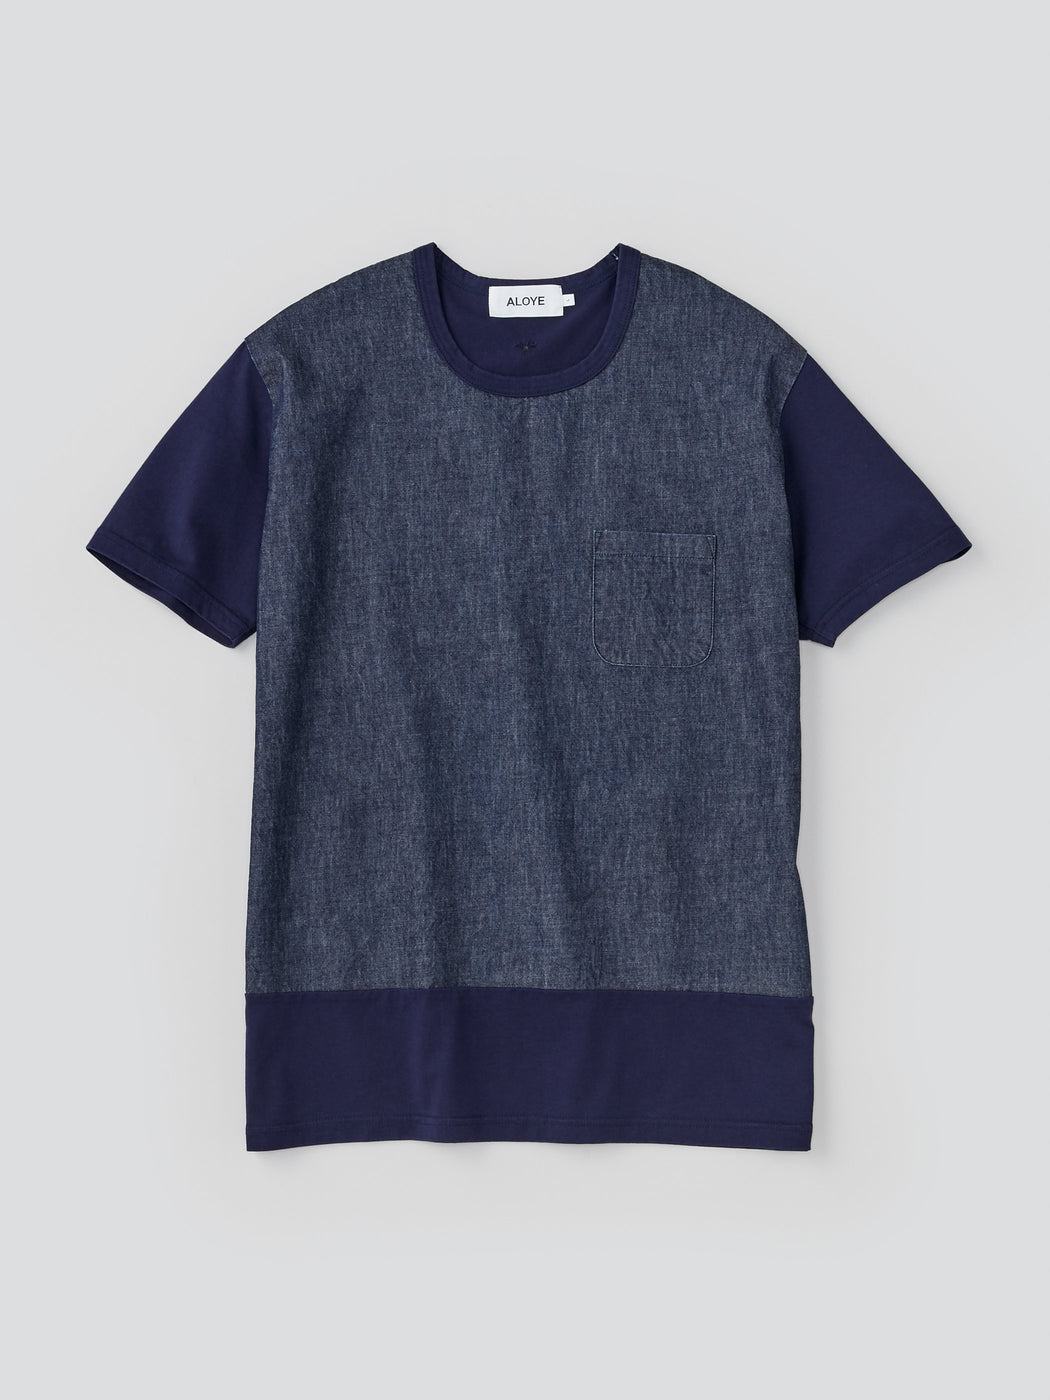 ALOYE Washed Denim Men's Short Sleeve T-shirt Washed Navy Denim